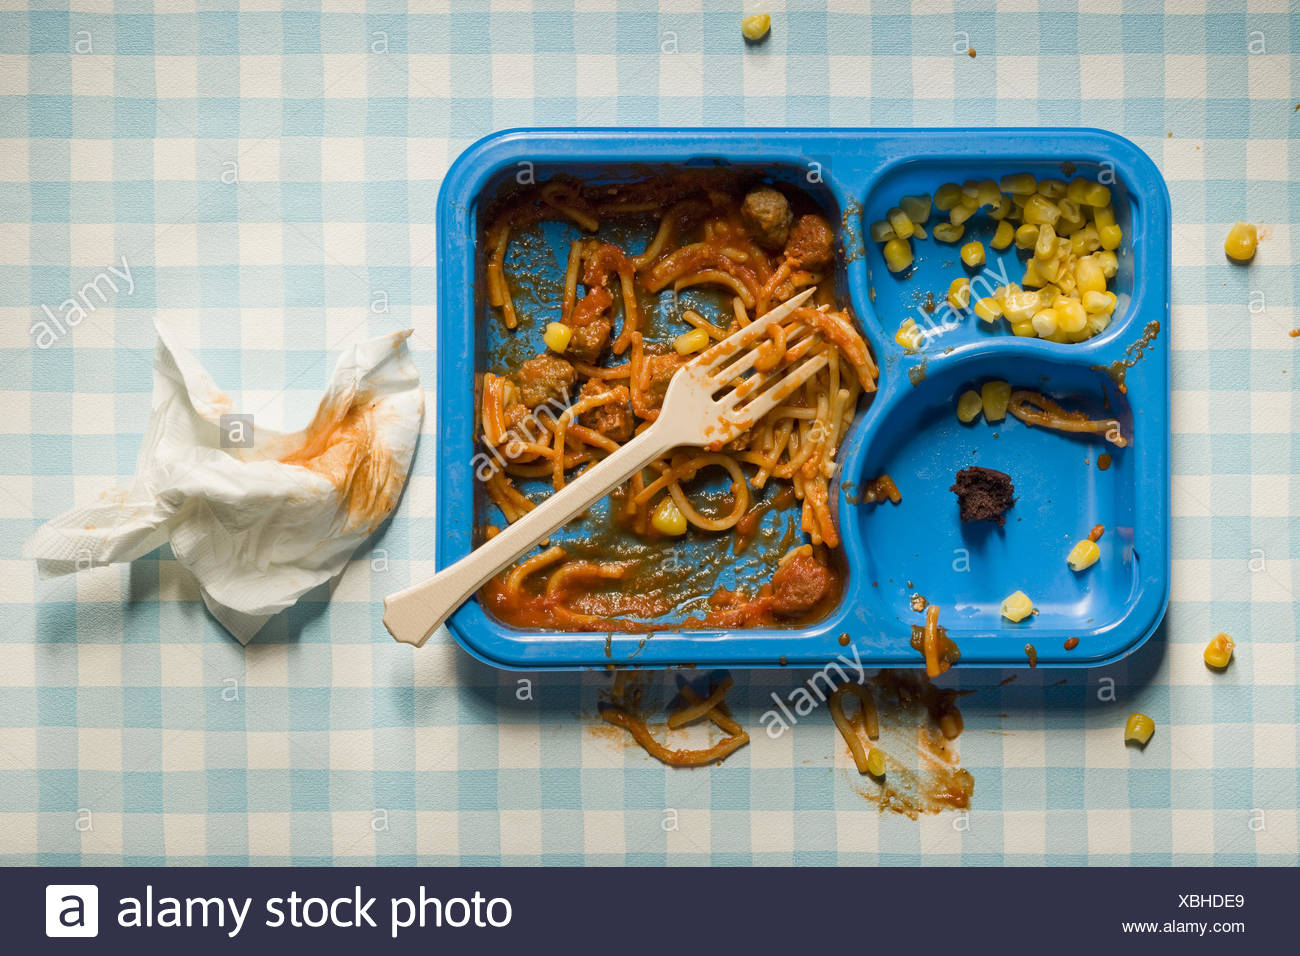 Eaten TV Dinner with plastic fork and used napkin - Stock Image